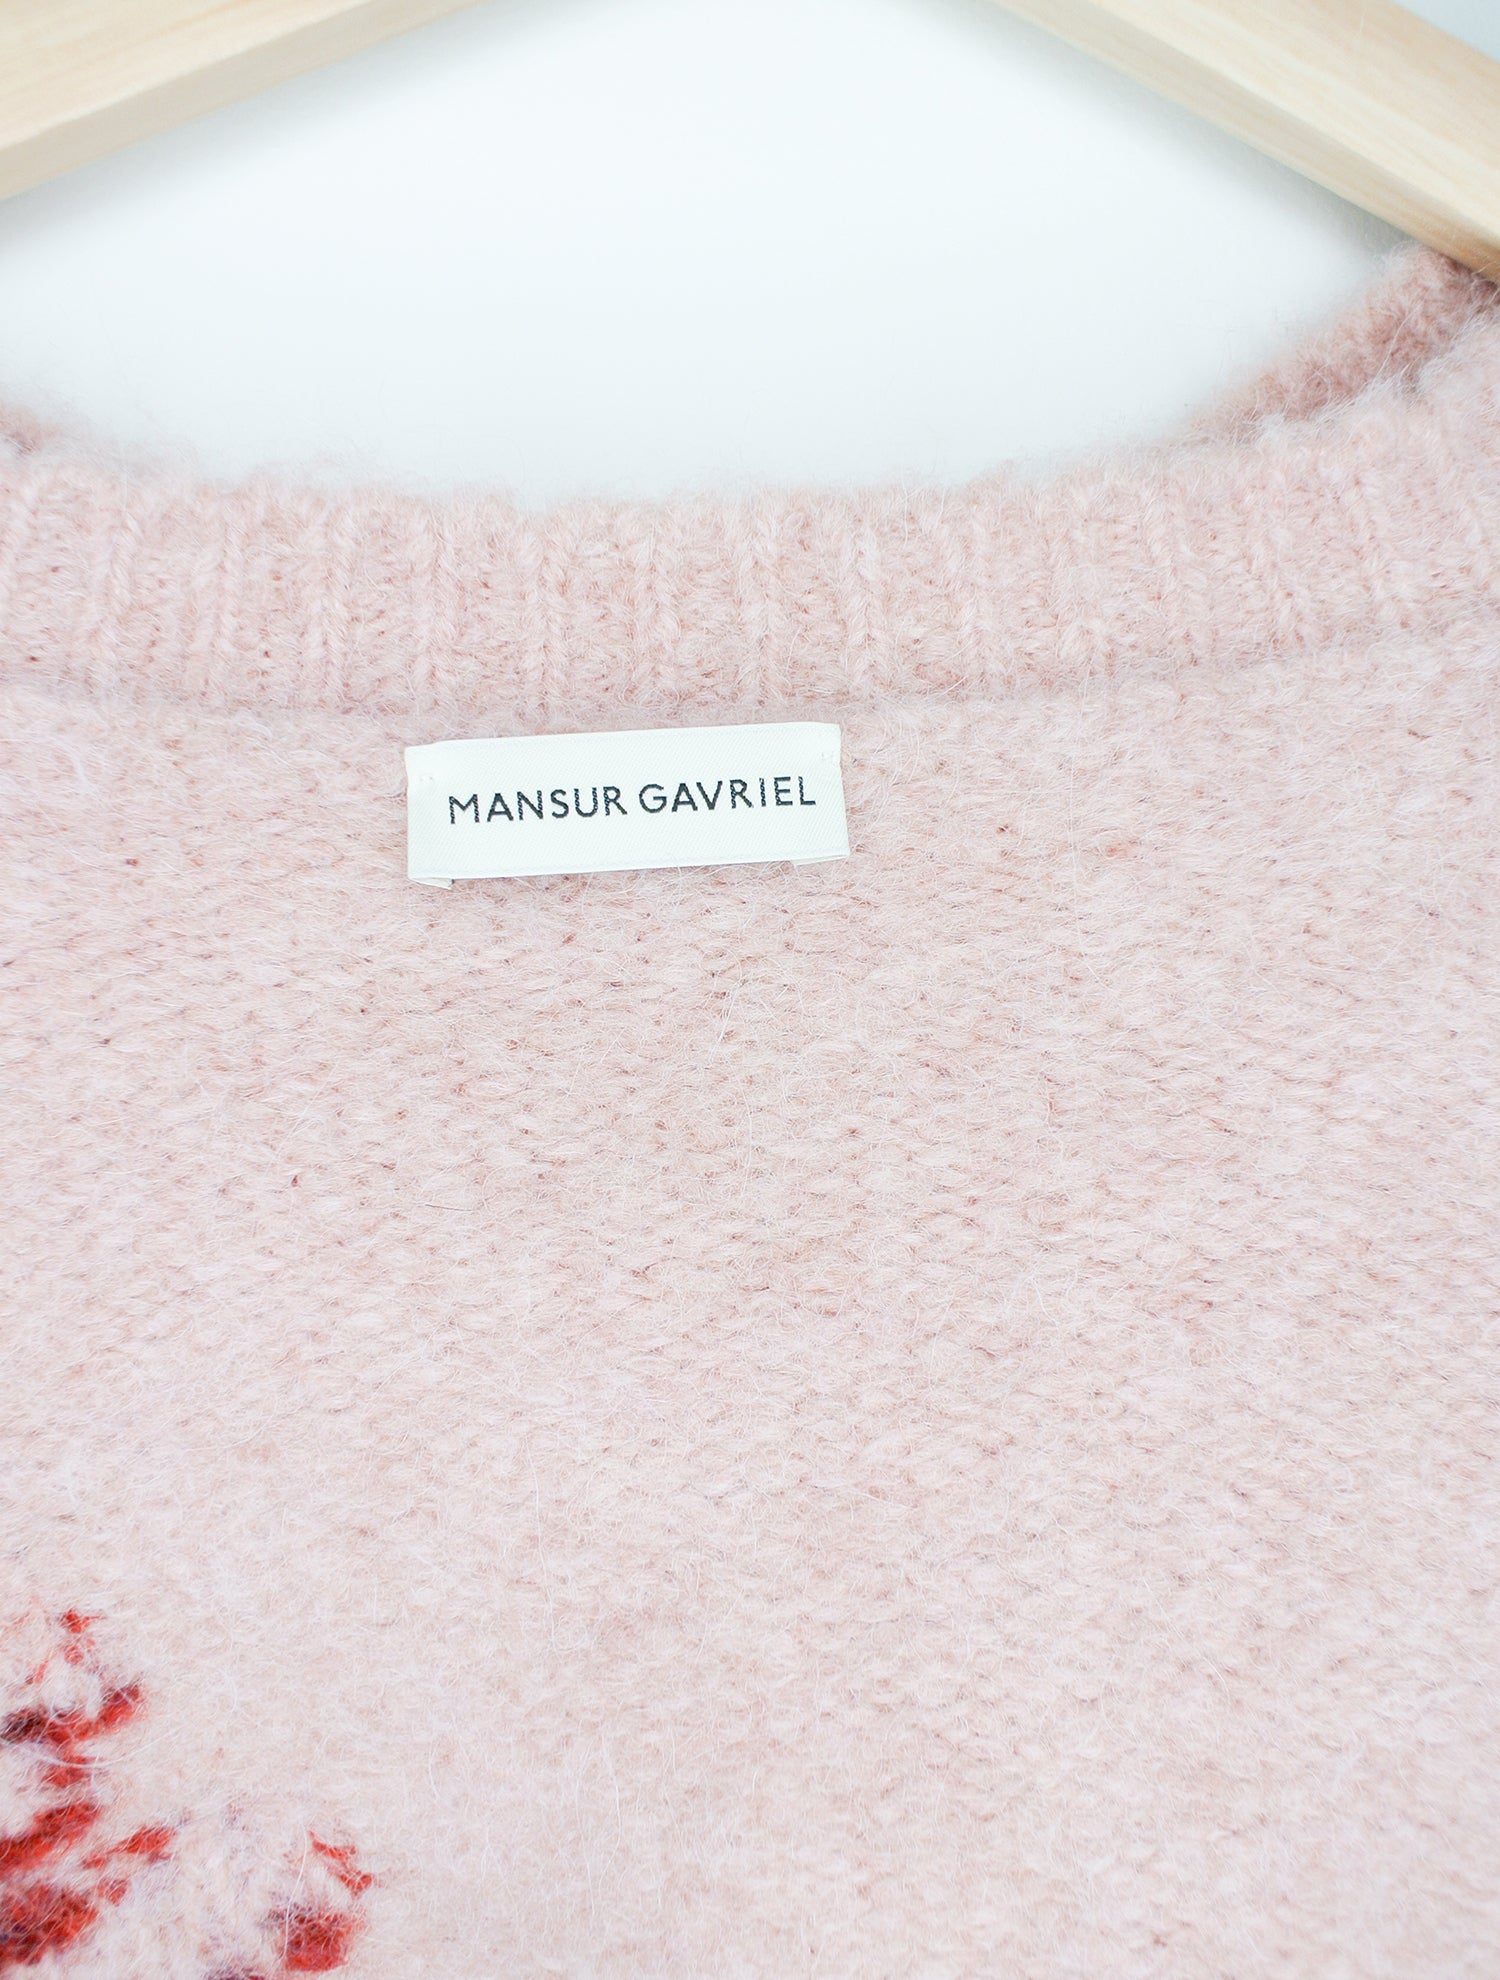 Mansur Gavriel Floral Wool-Blend Oversized Sweater Sz S